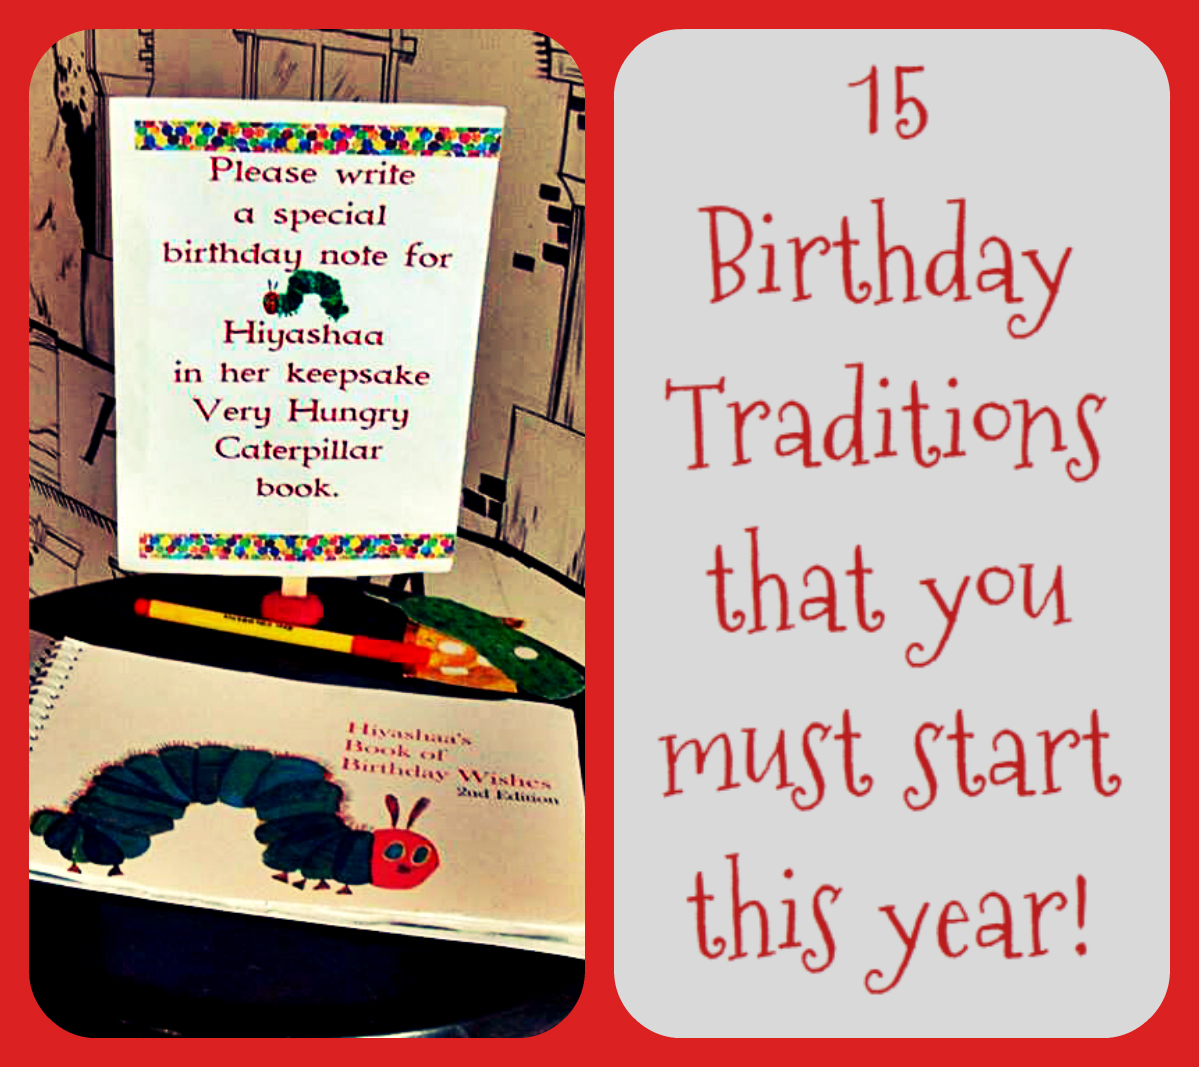 15 Birthday Traditions To Make Your Kids' Birthday Extra